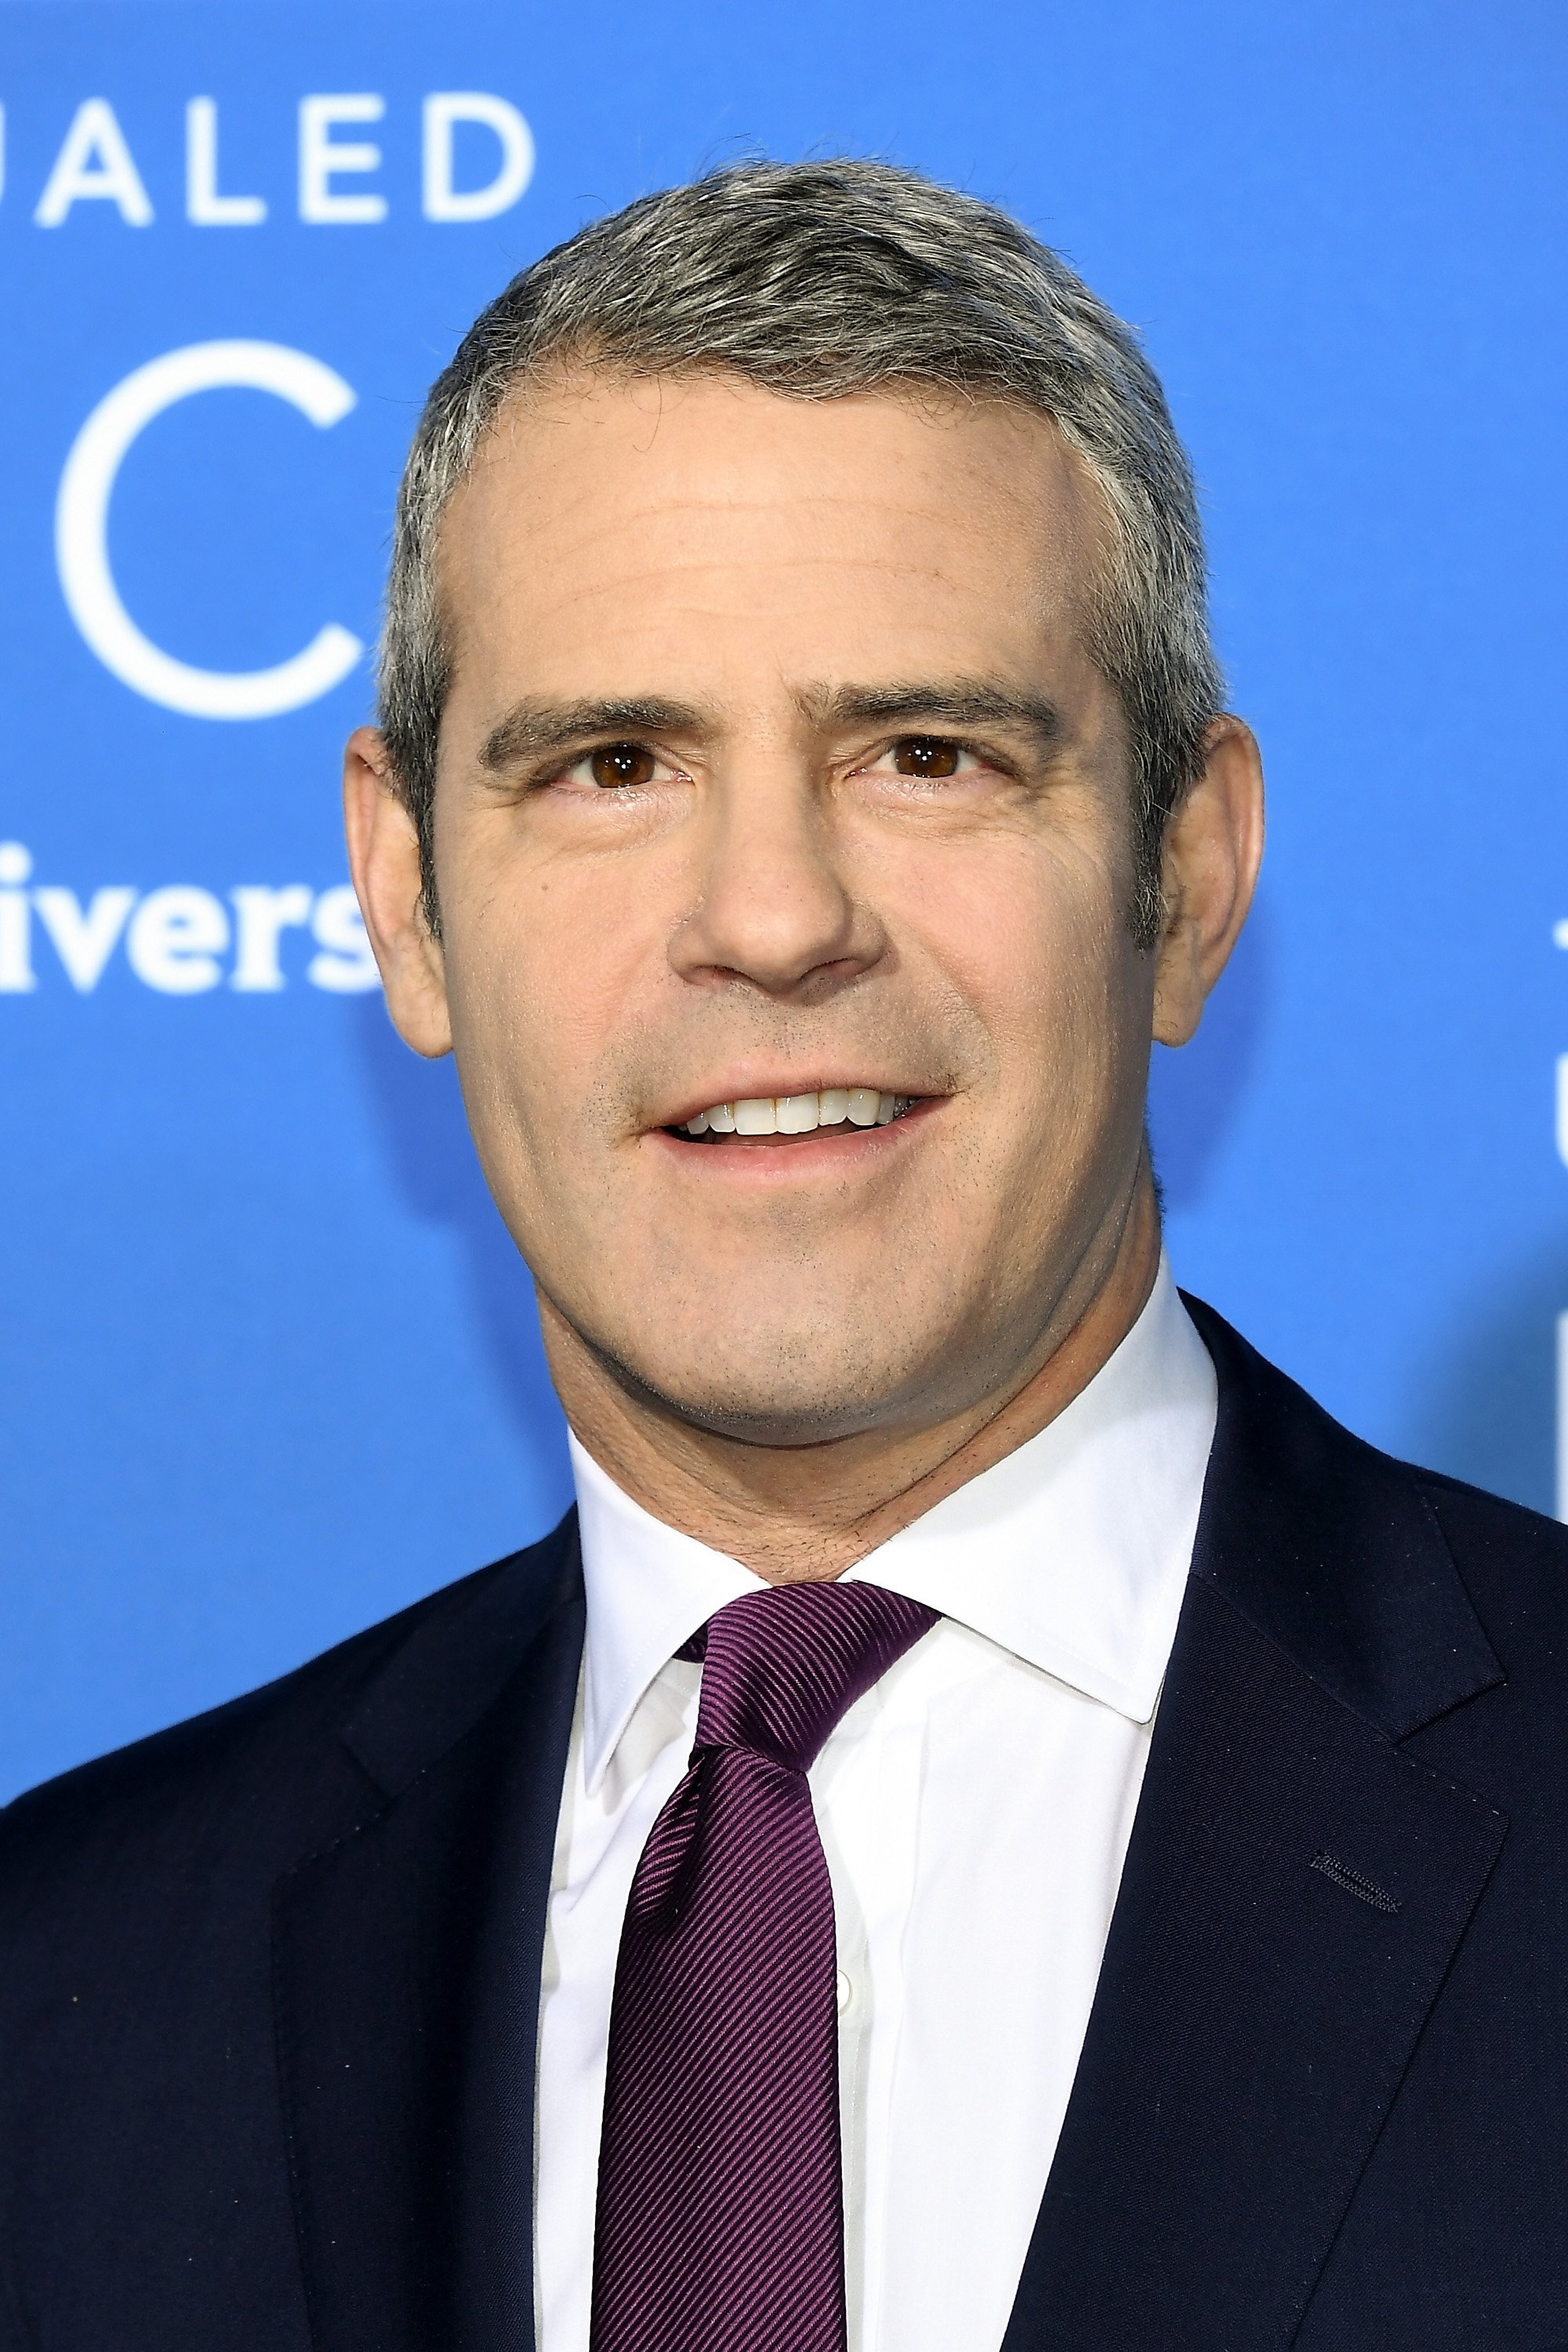 Andy Cohen pictured at the 2017 NBCUniversal Upfront at Radio City Music Hall, 2017, New York City. | Getty Images